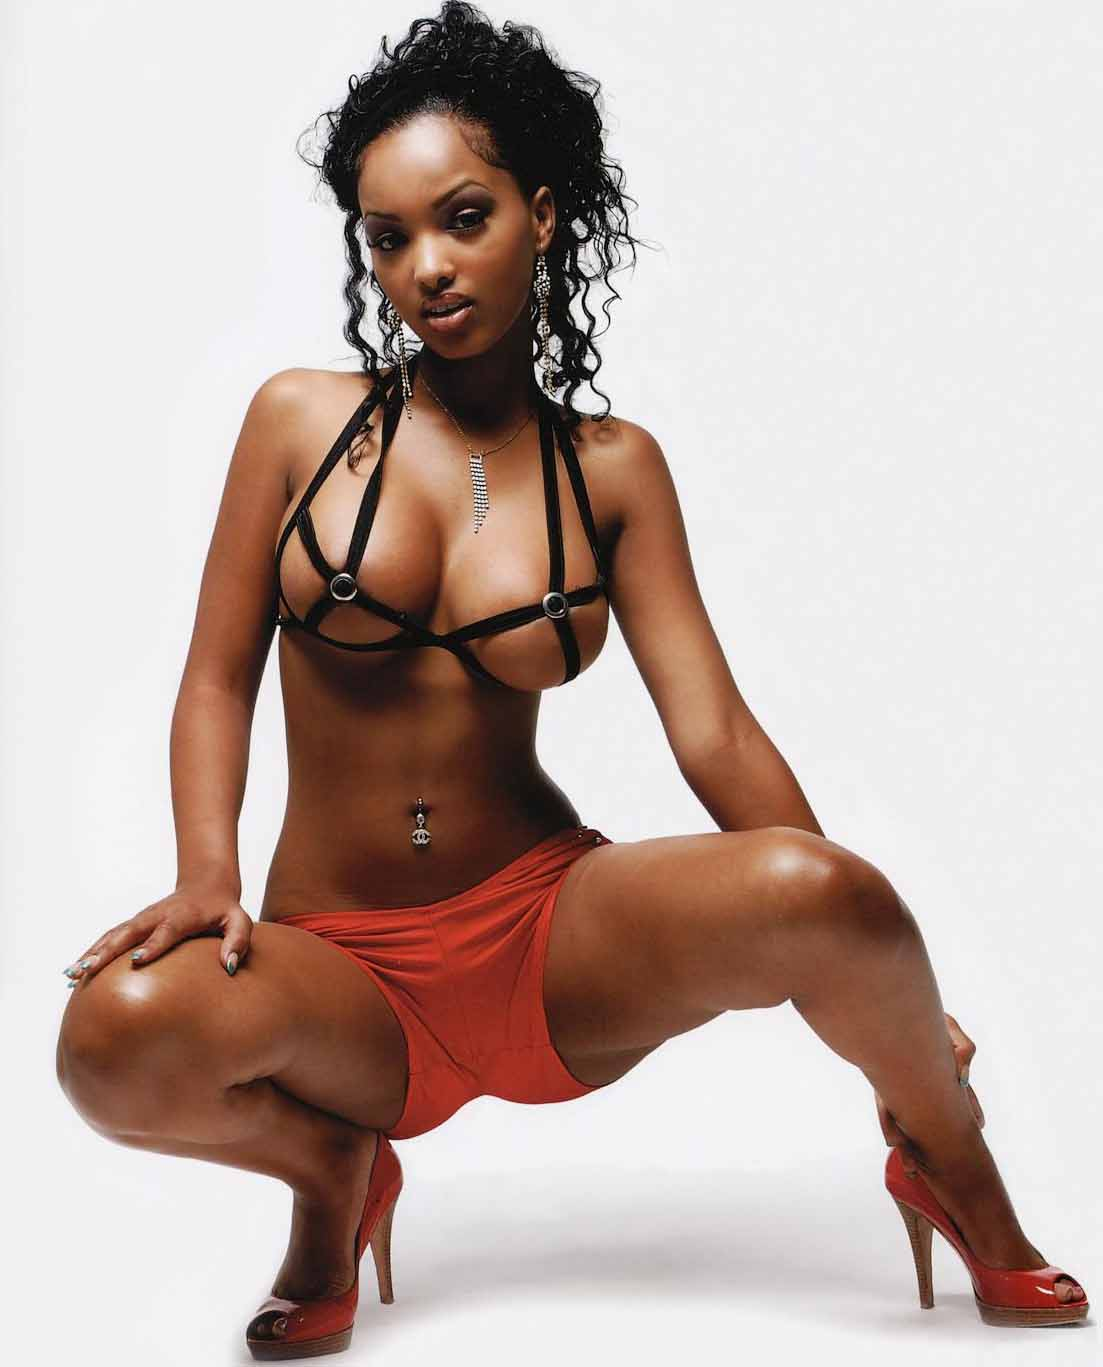 Hot LoLa Monroe nude photos 2019